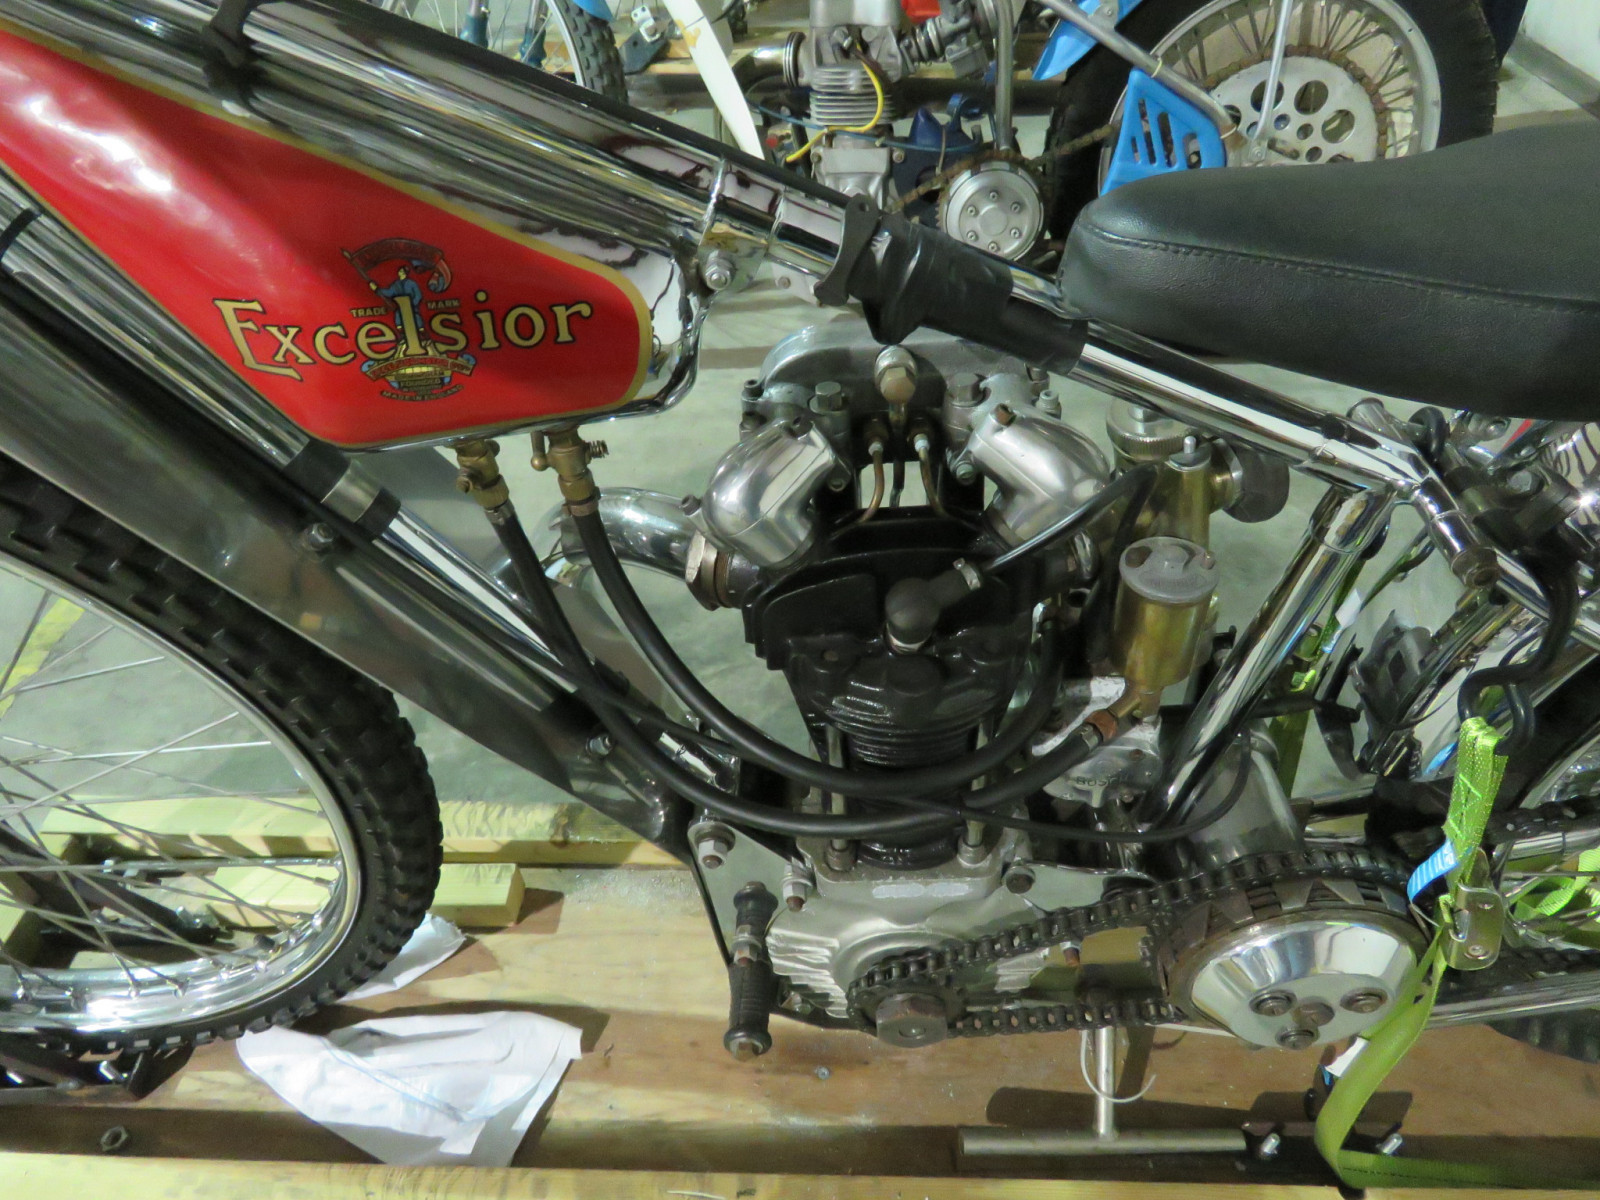 JAP Speedway Racer Motorcycle - Image 6